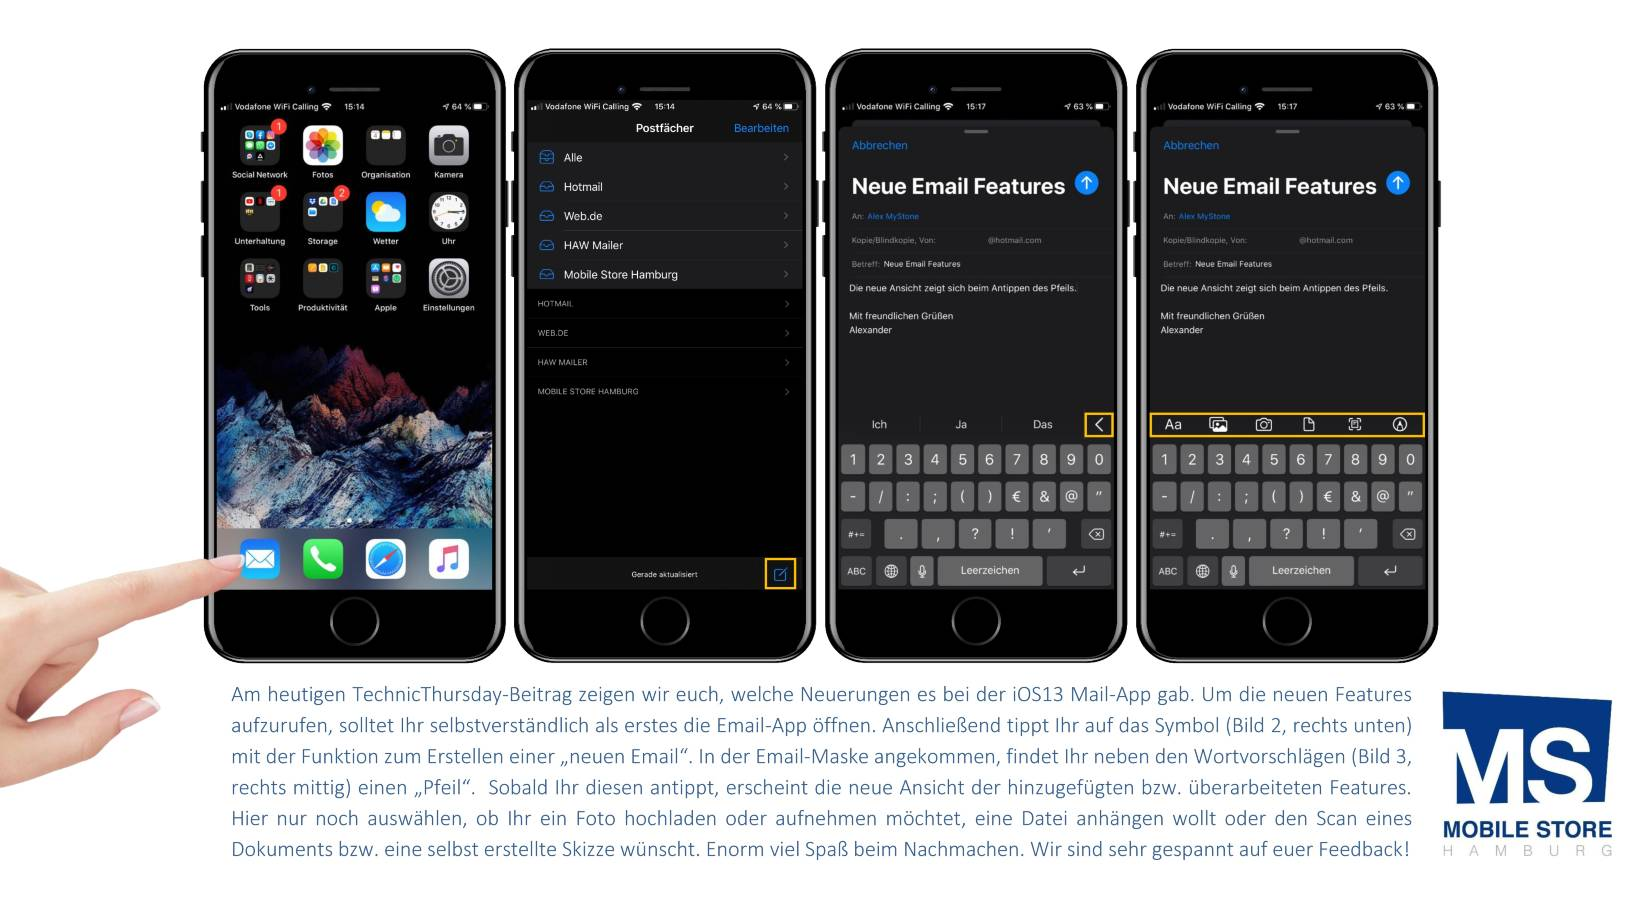 170. iOS13 - Neue Email Features